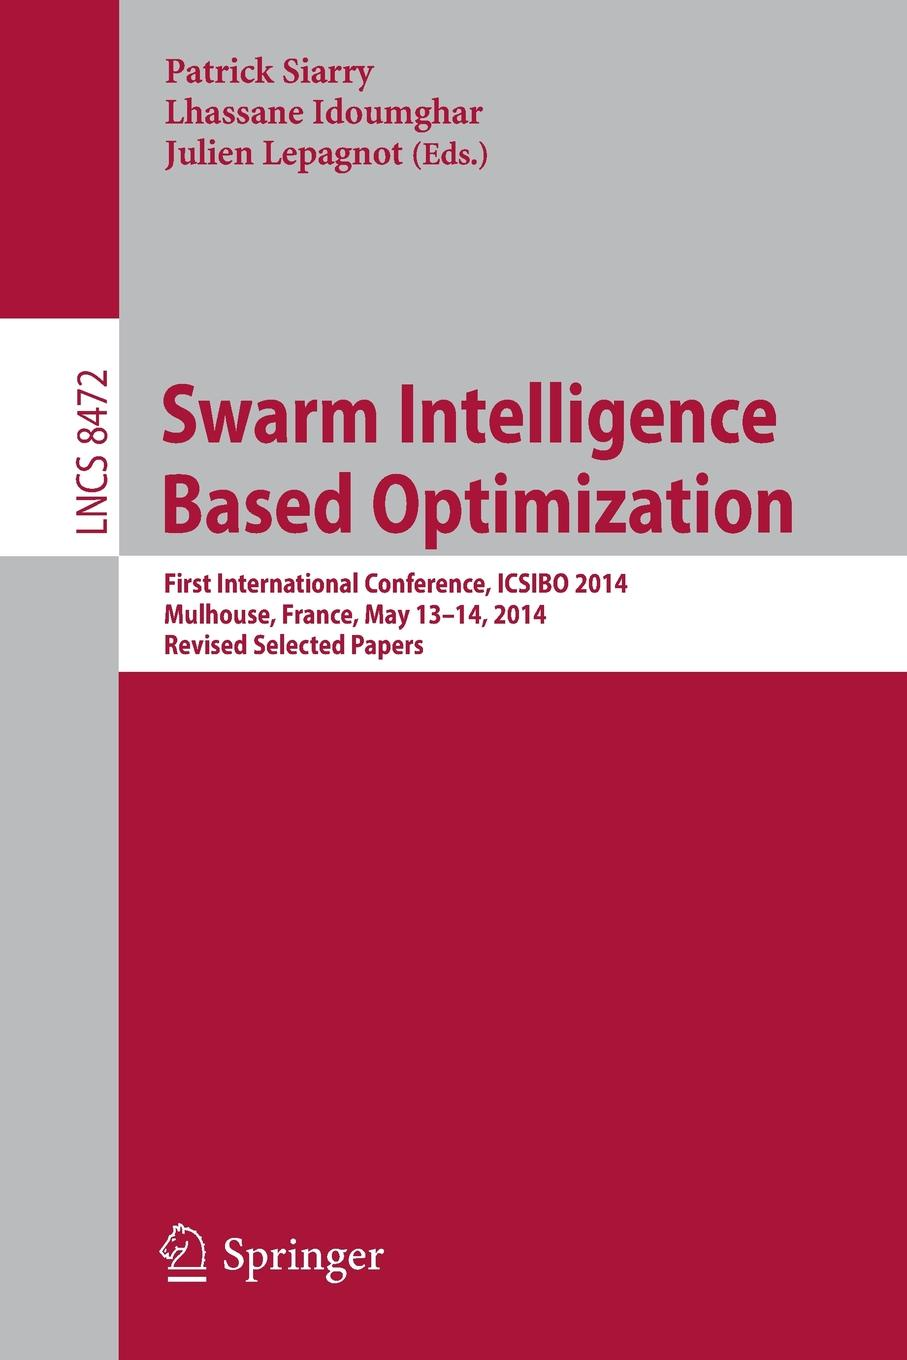 Swarm Intelligence Based Optimization. First International Conference, ICSIBO 2014, Mulhouse, France, May 13-14, 2014. Revised Selected Papers application of particle swarm optimization